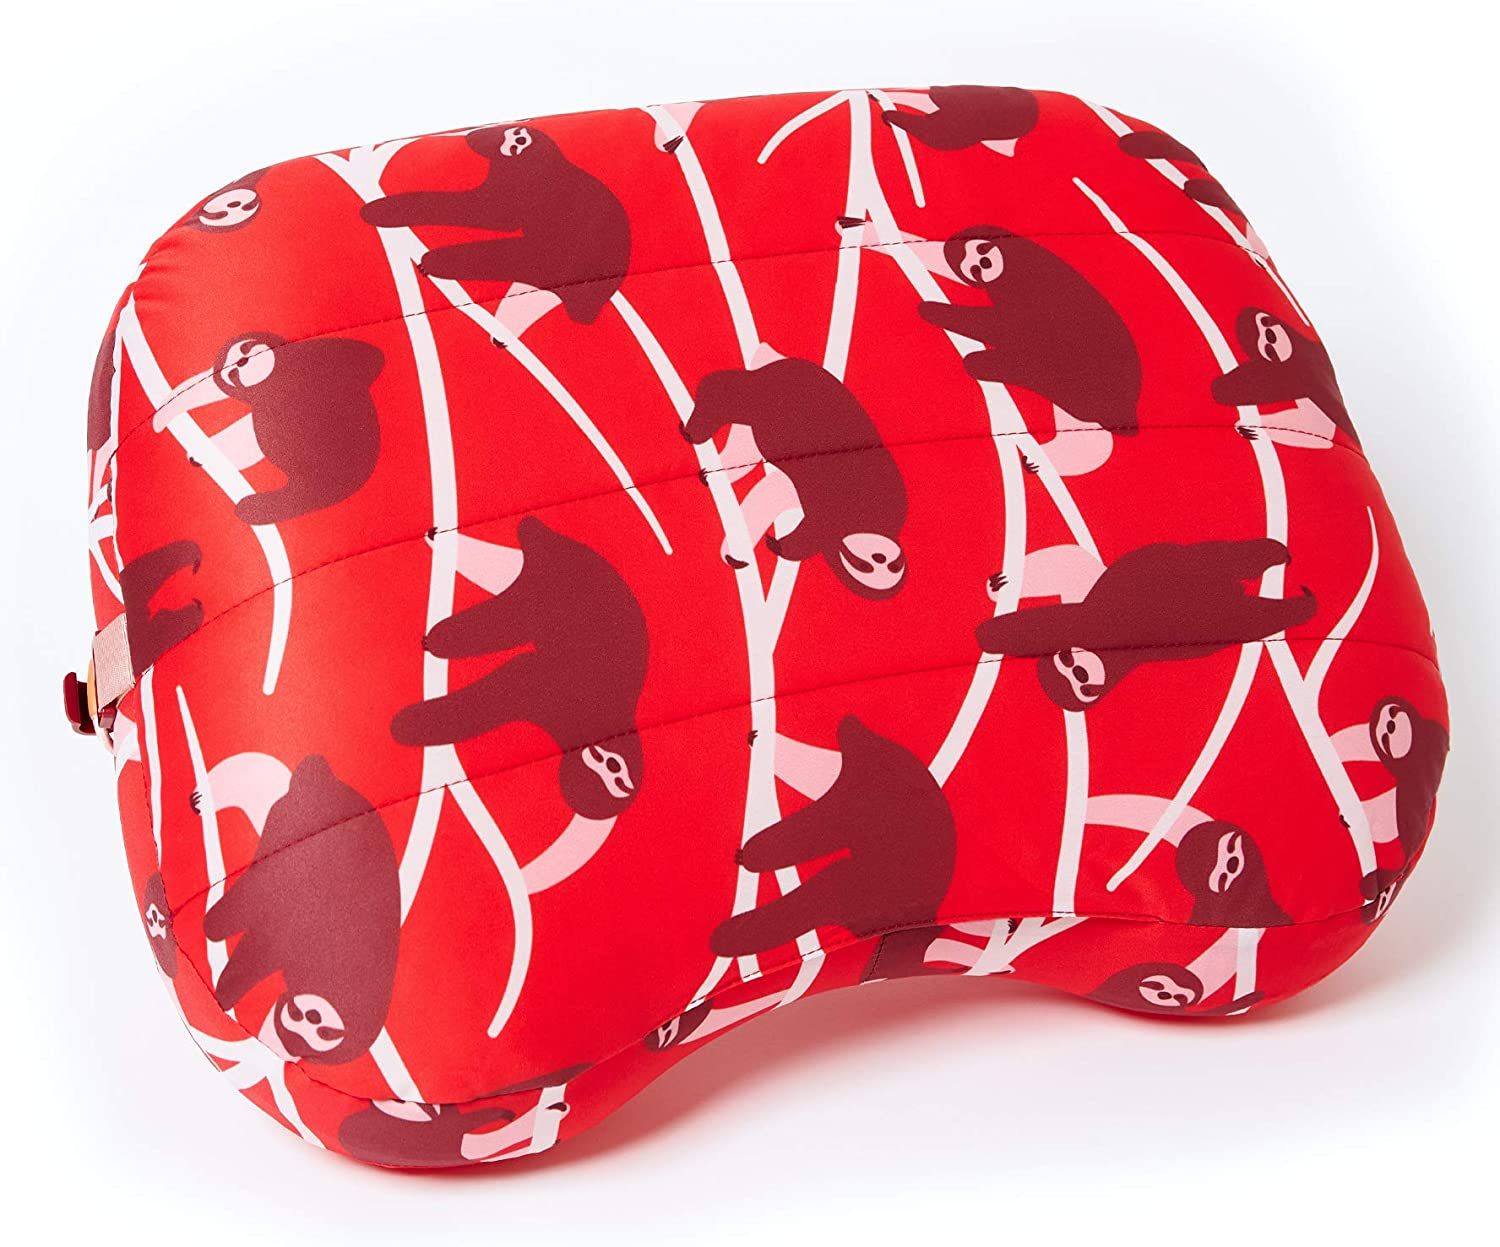 Ballast Beach Year-end gift Pillow – Camping Inflatable Pil Free shipping anywhere in the nation